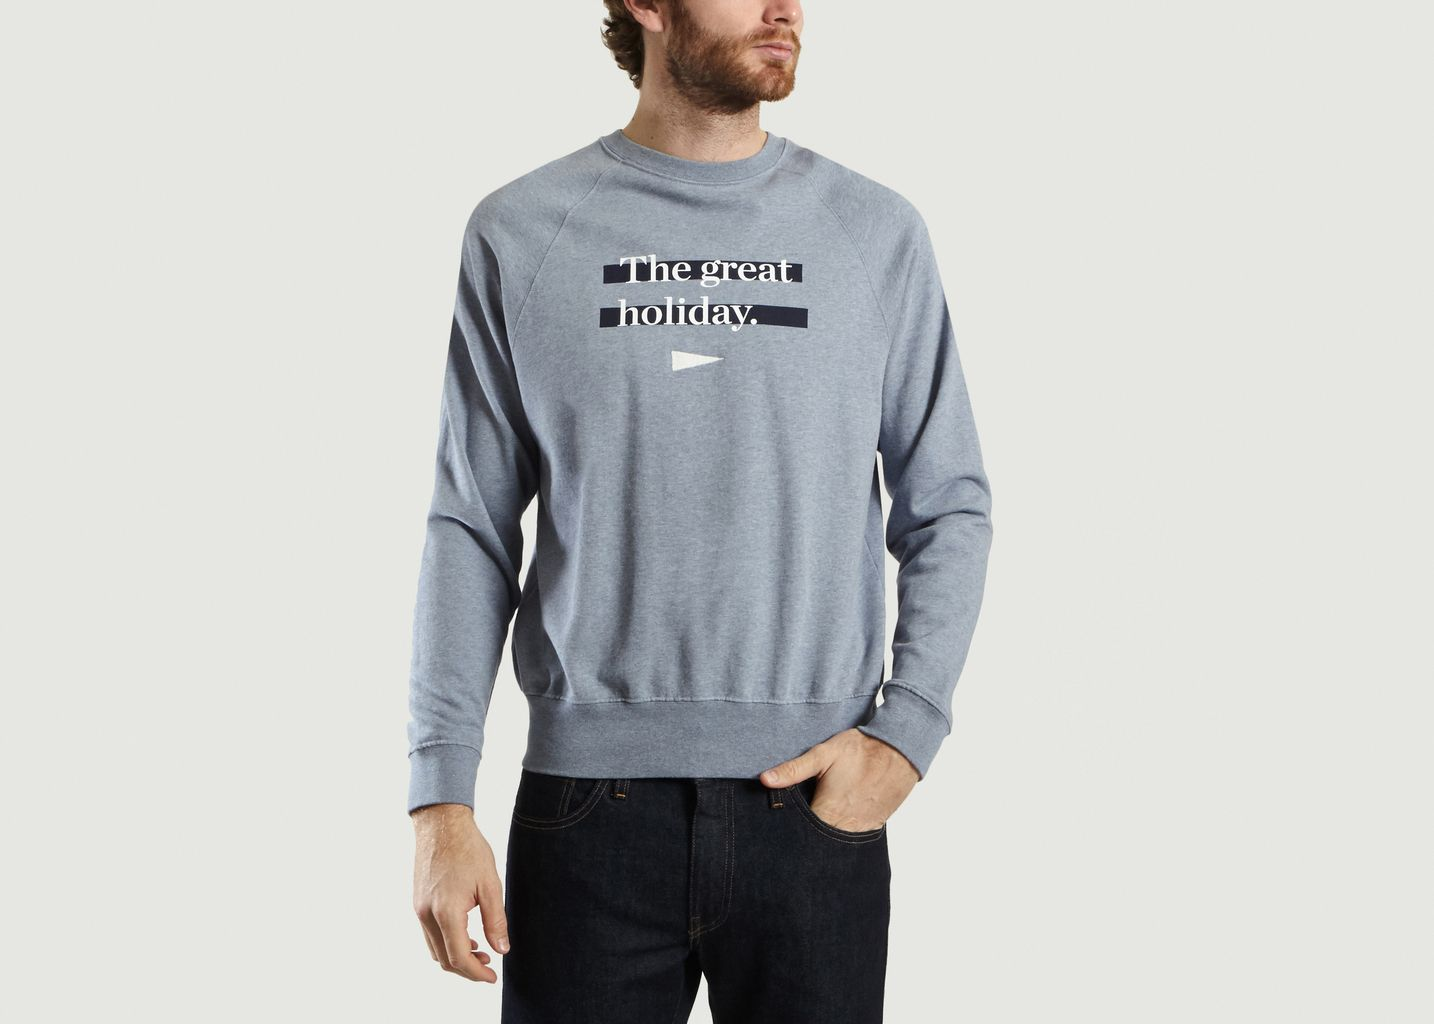 Sweat The Great Holiday Giorgio - Cuisse de Grenouille